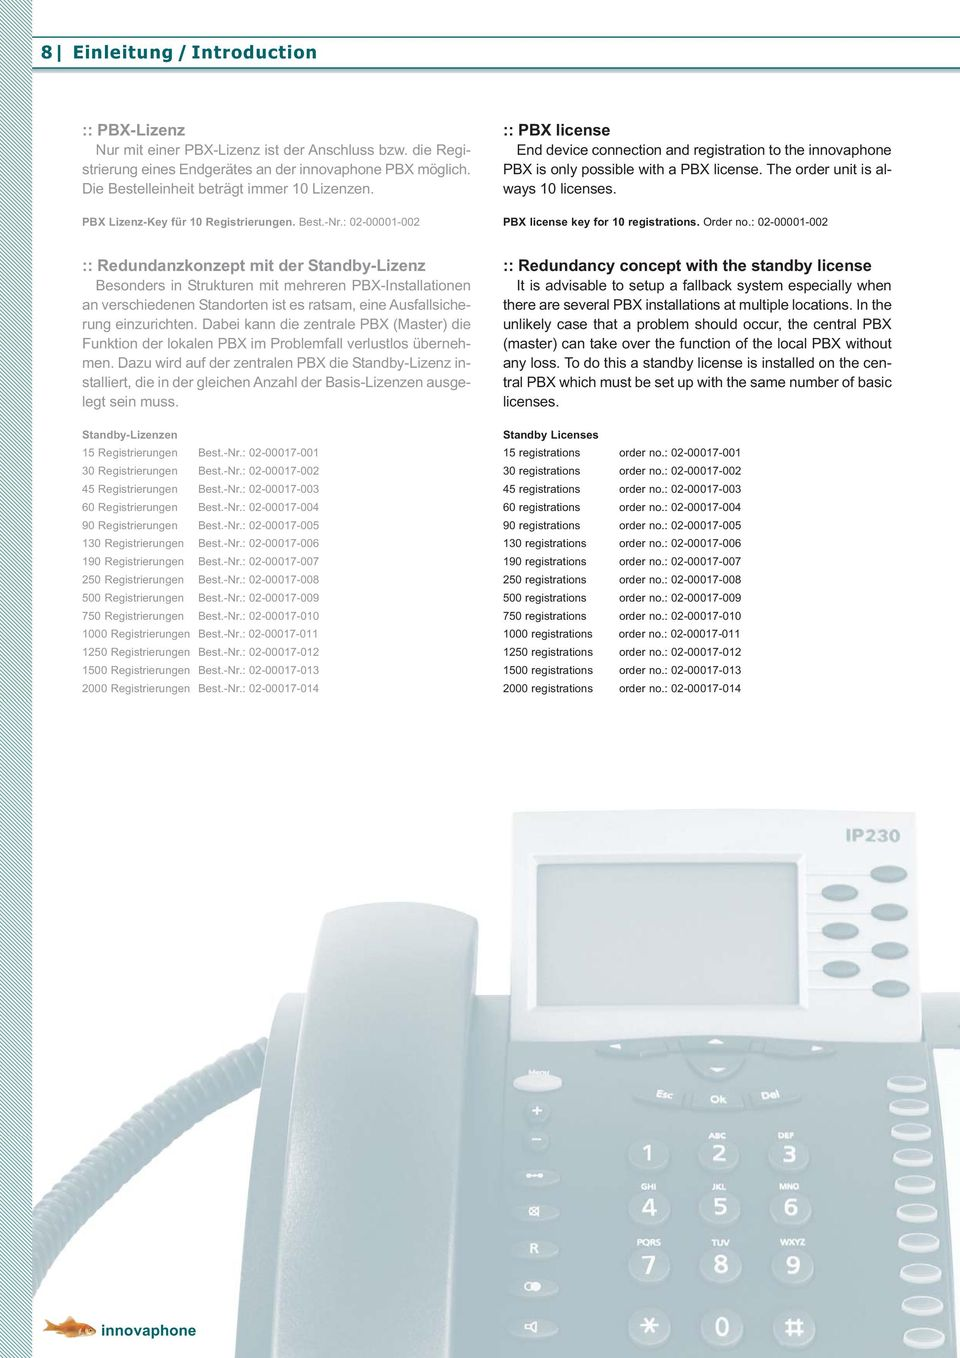 The order unit is always 10 licenses. PBX license key for 10 registrations. Order no.